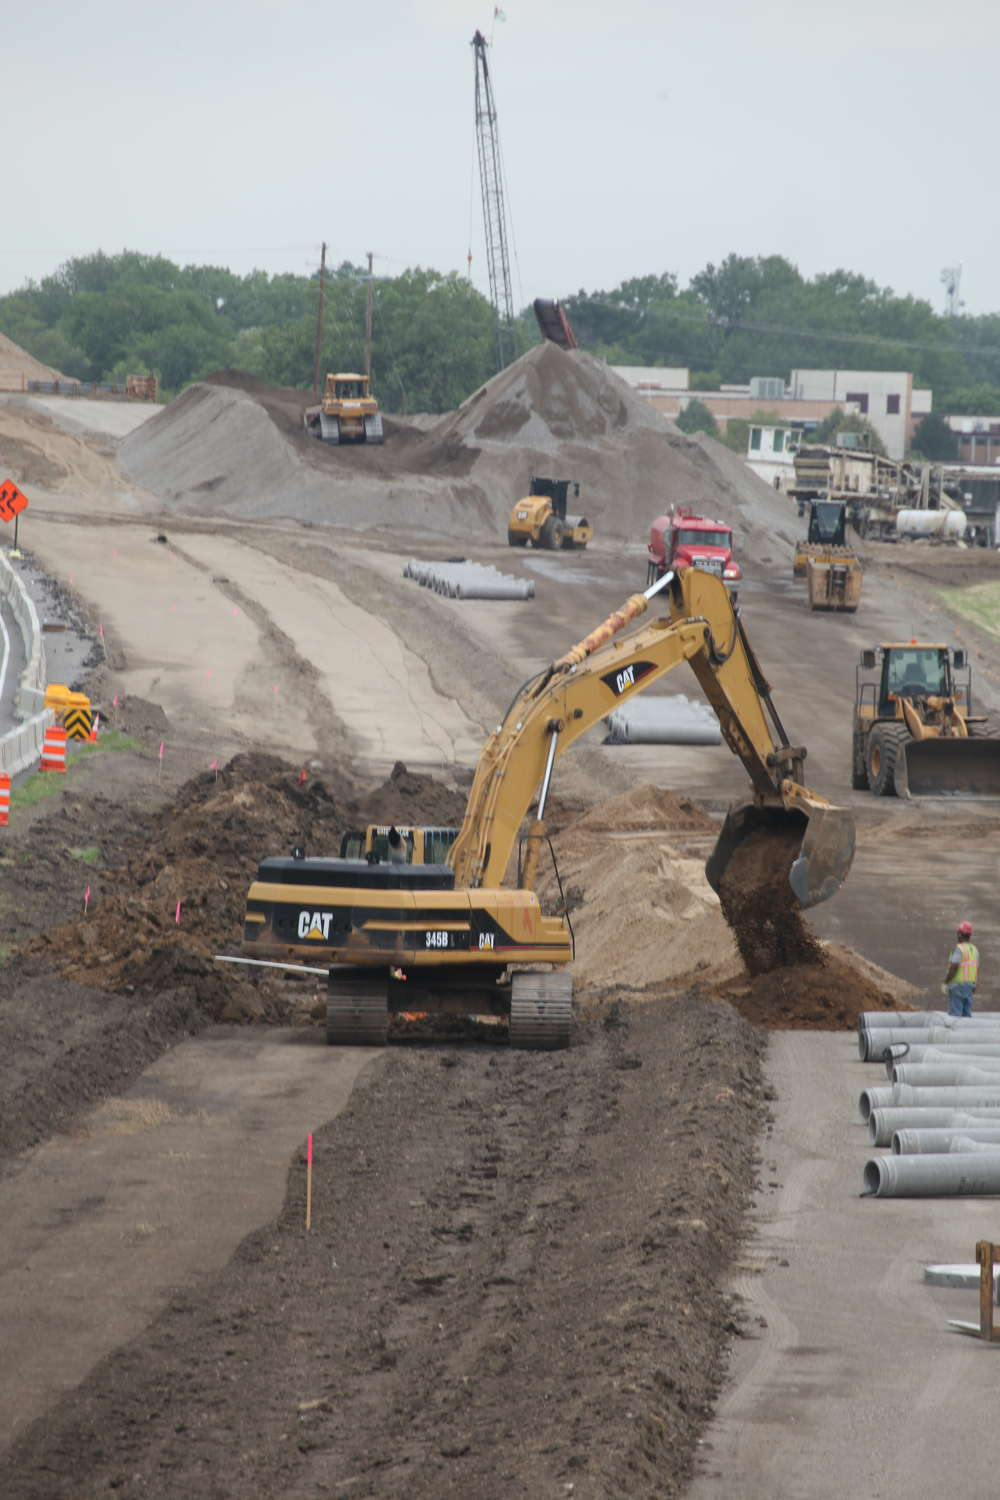 Crews work on a section of the new highway digging sewer, grading and pushing dirt.